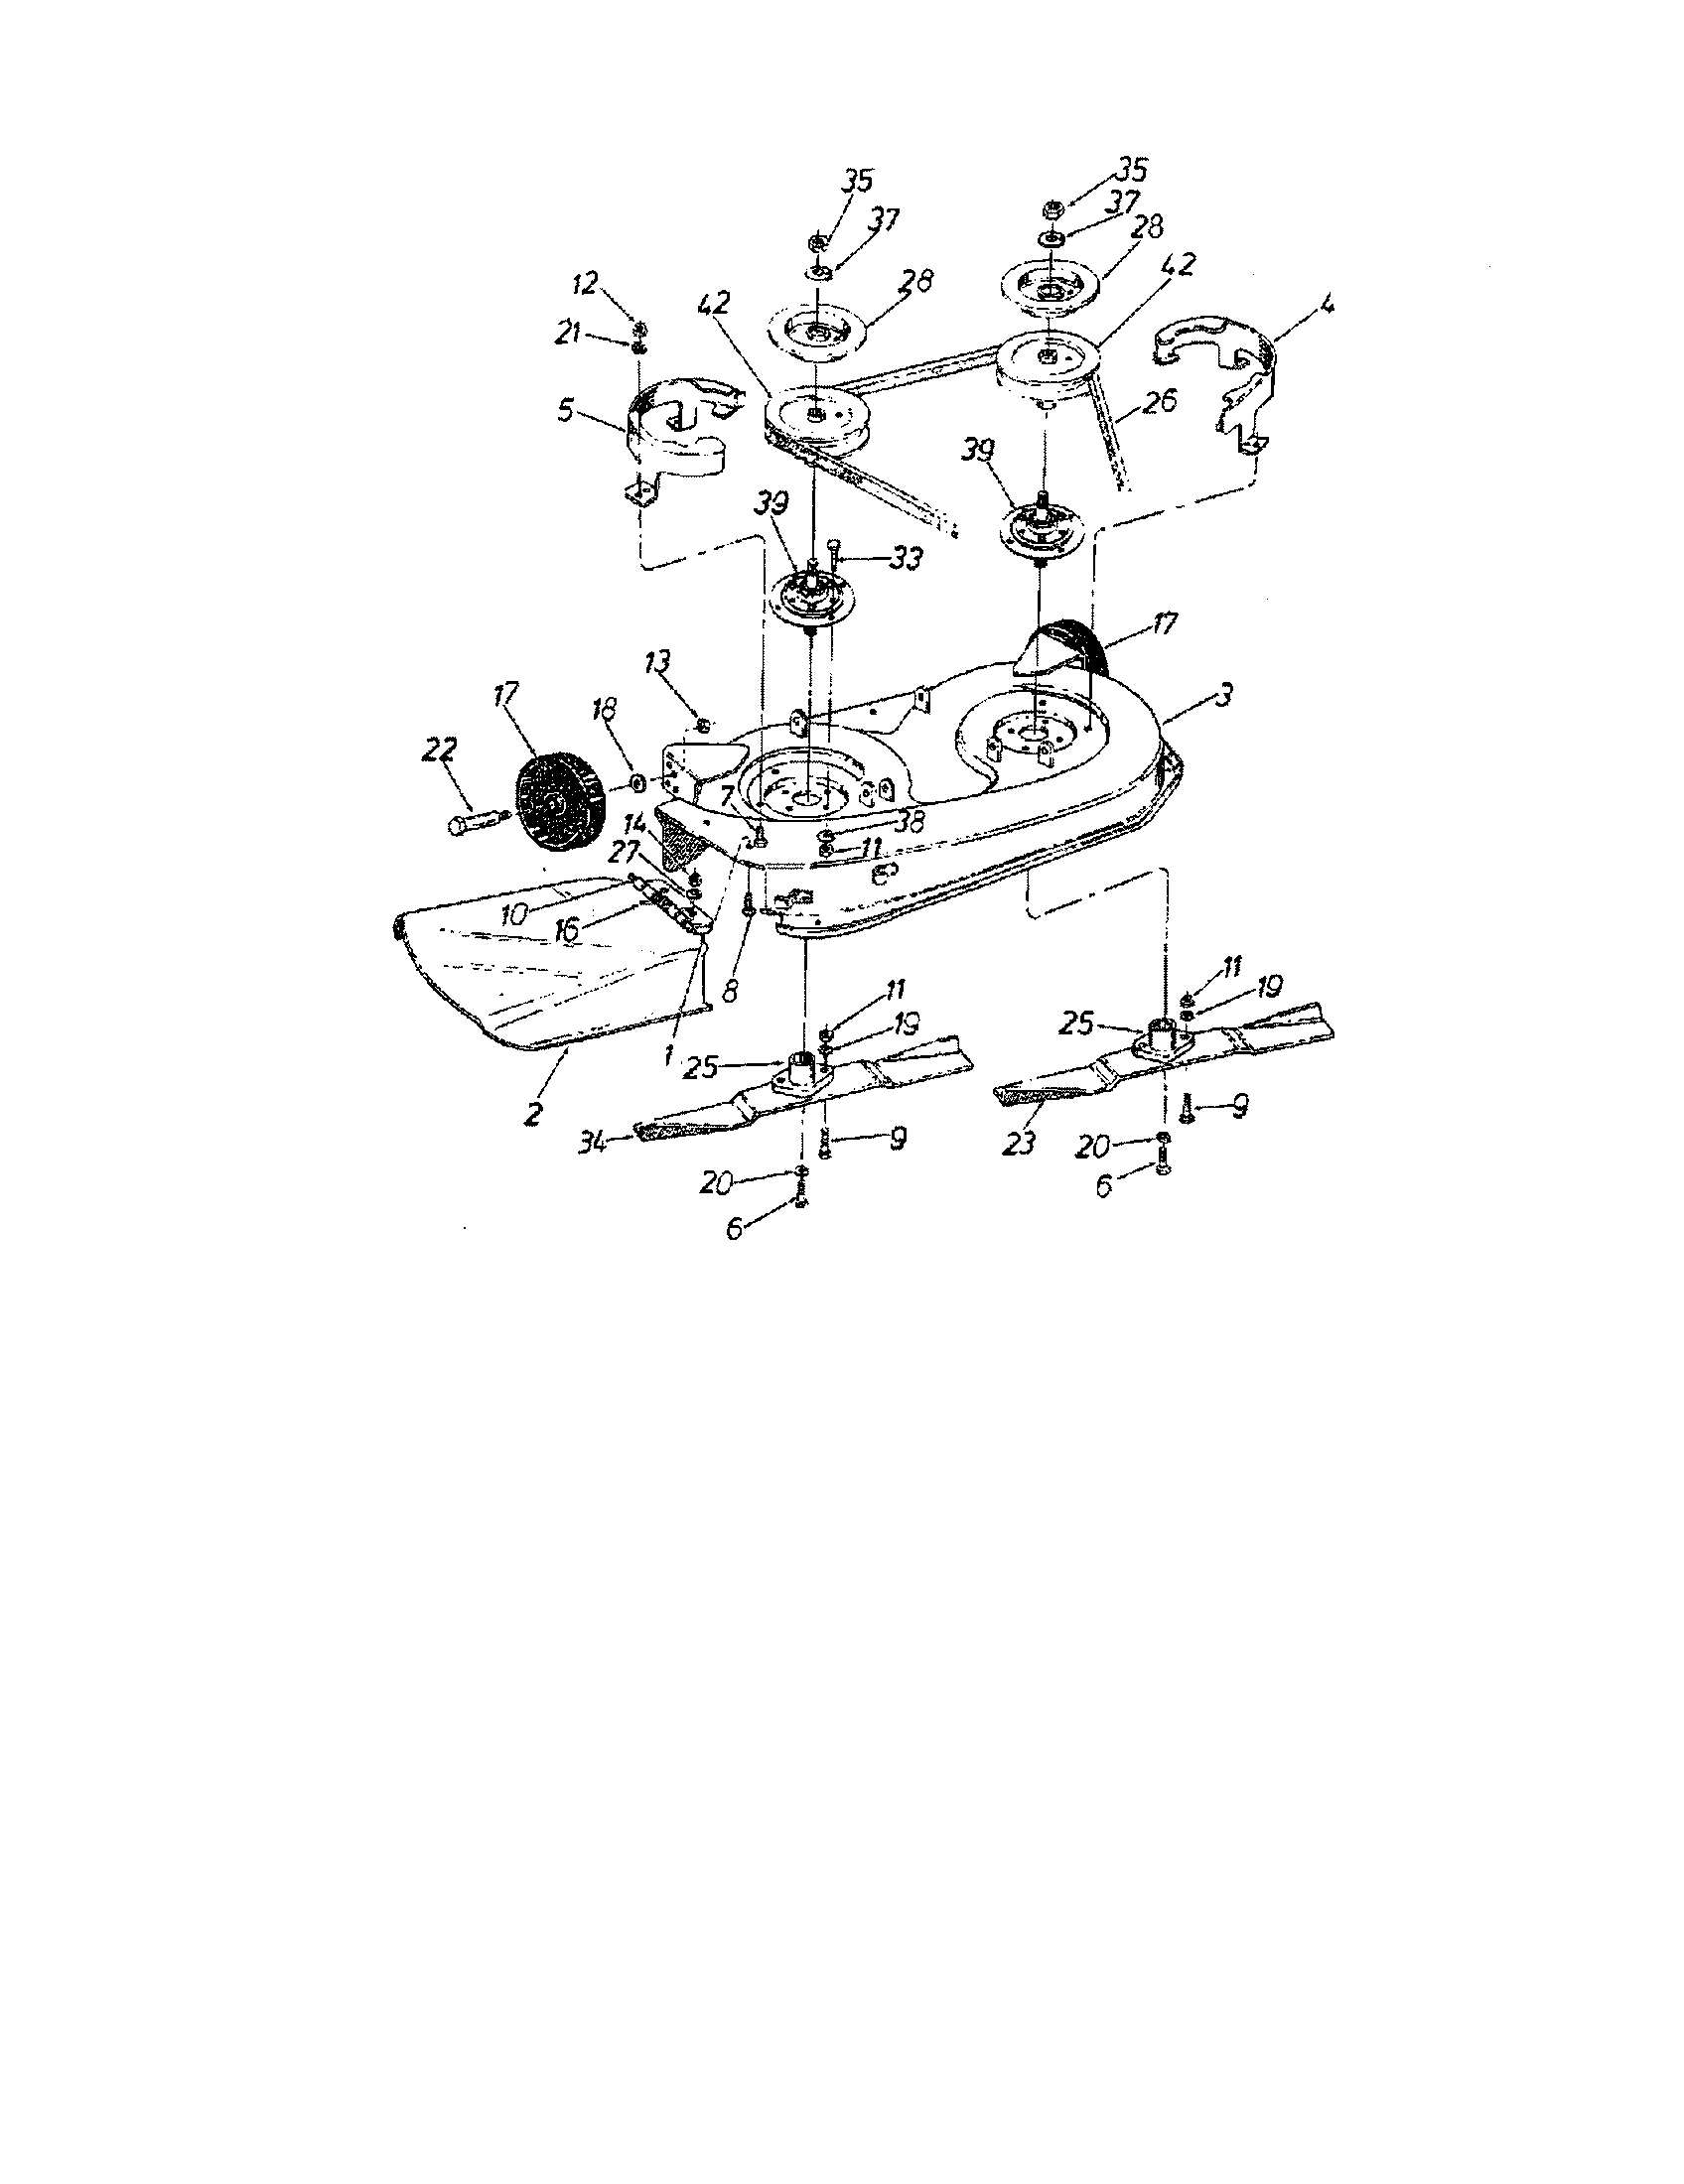 CHUTE ASSEMBLY Diagram & Parts List for Model TMO33931A